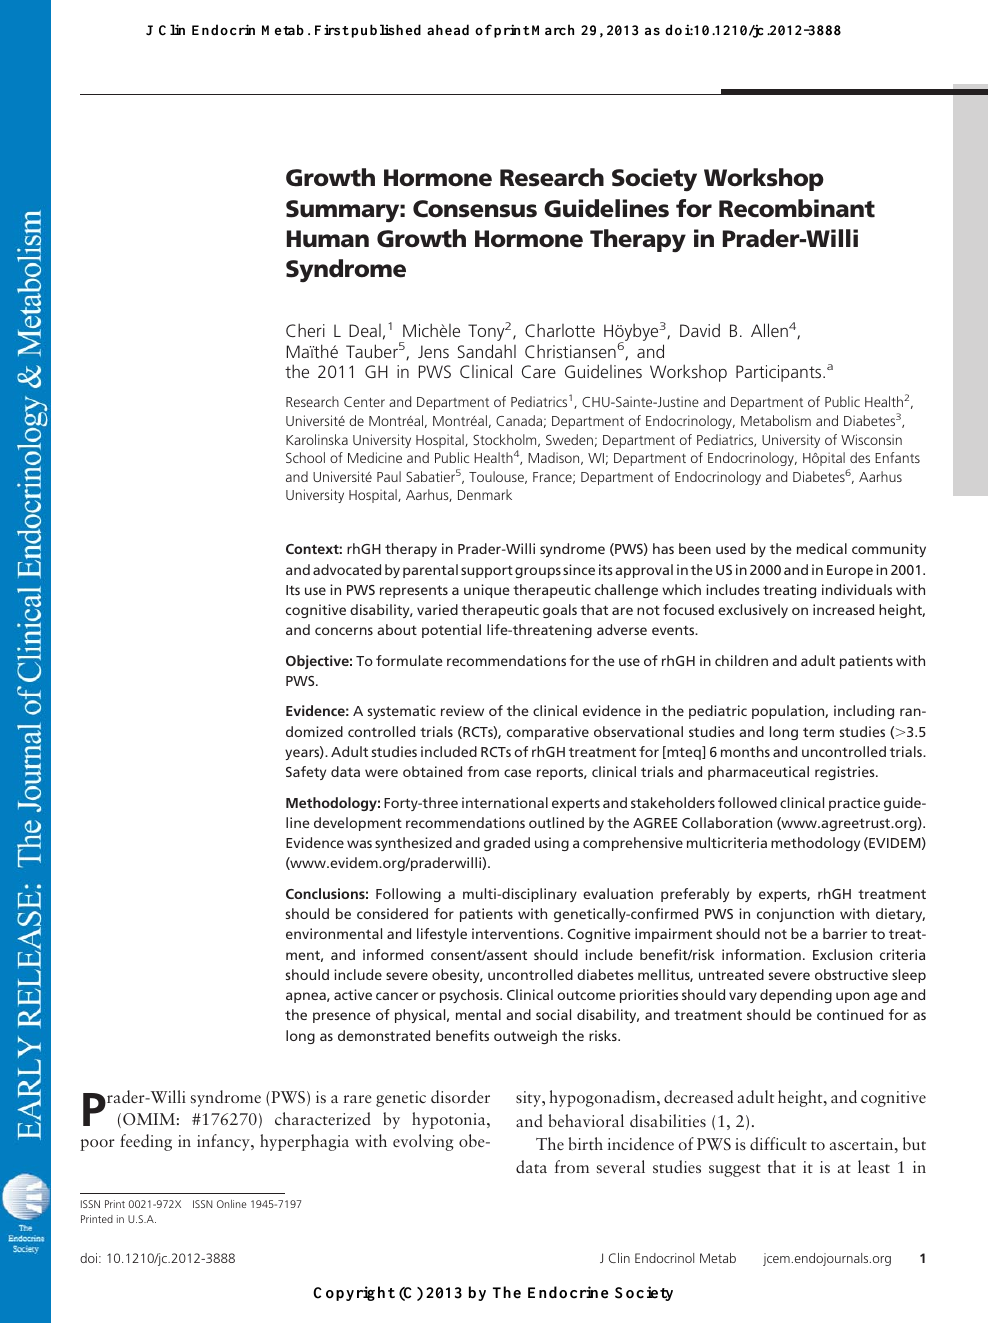 Growth Hormone Research Society Workshop Summary: Consensus